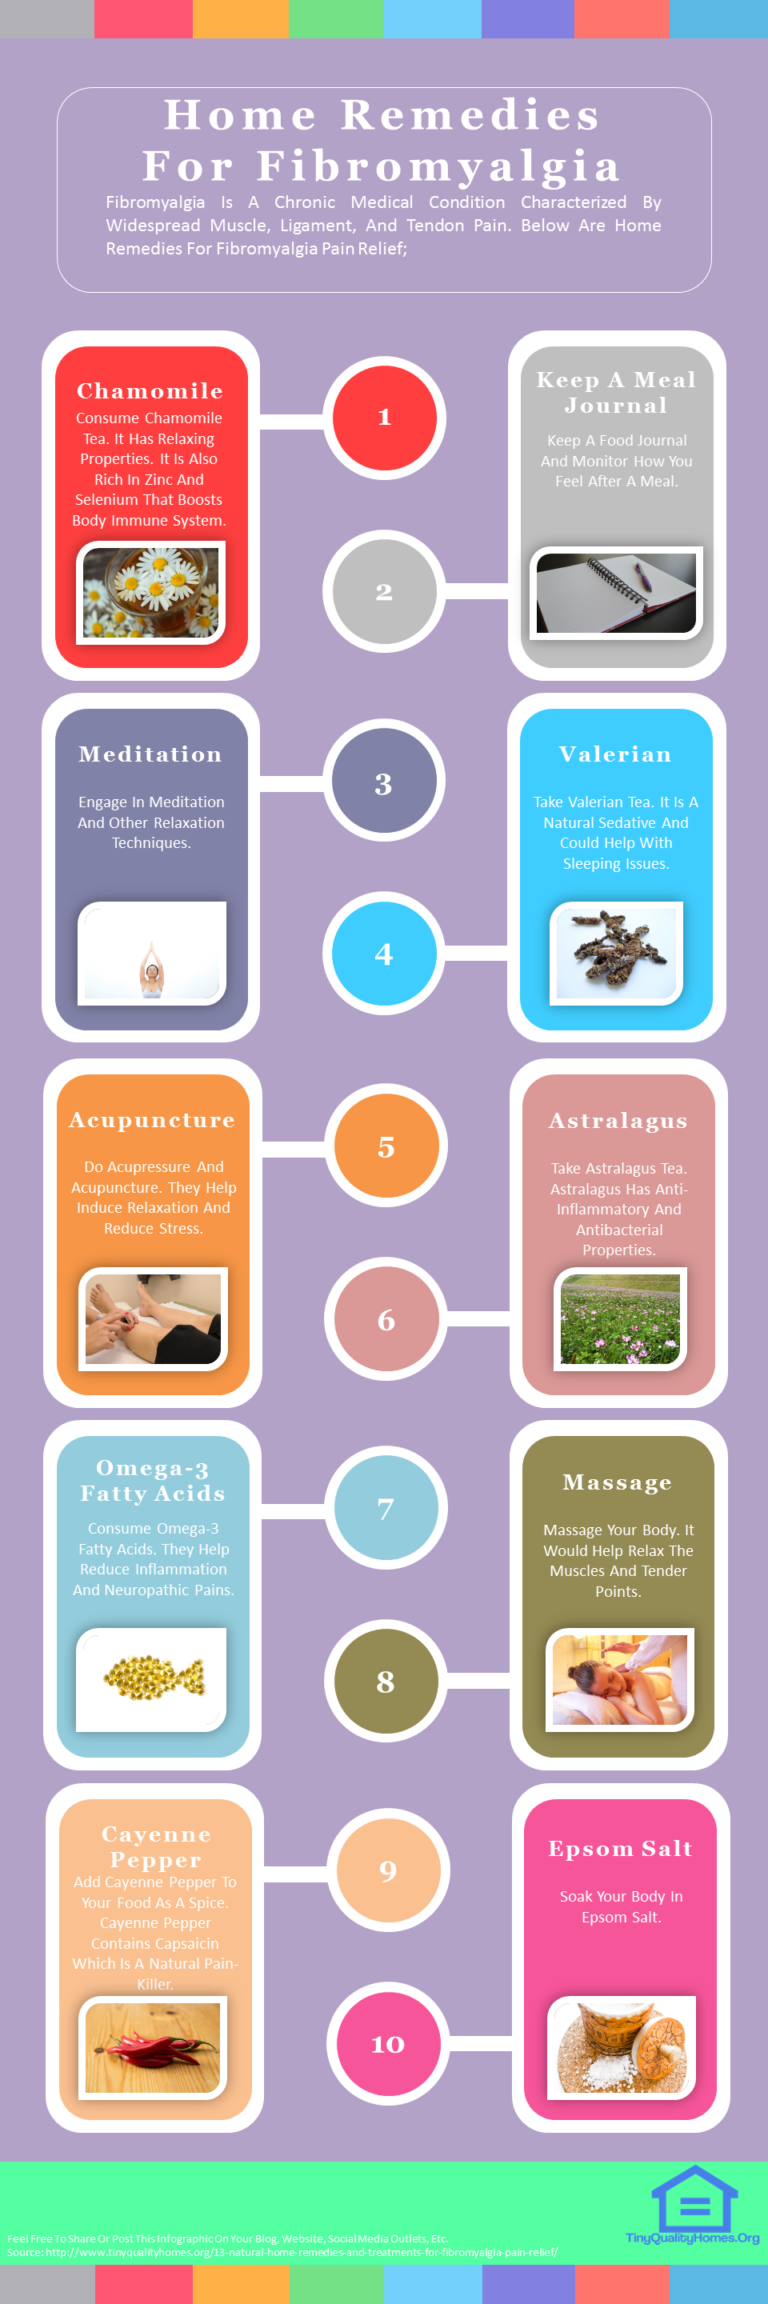 13 quality home remedies for fibromyalgia pain relief tiny quality